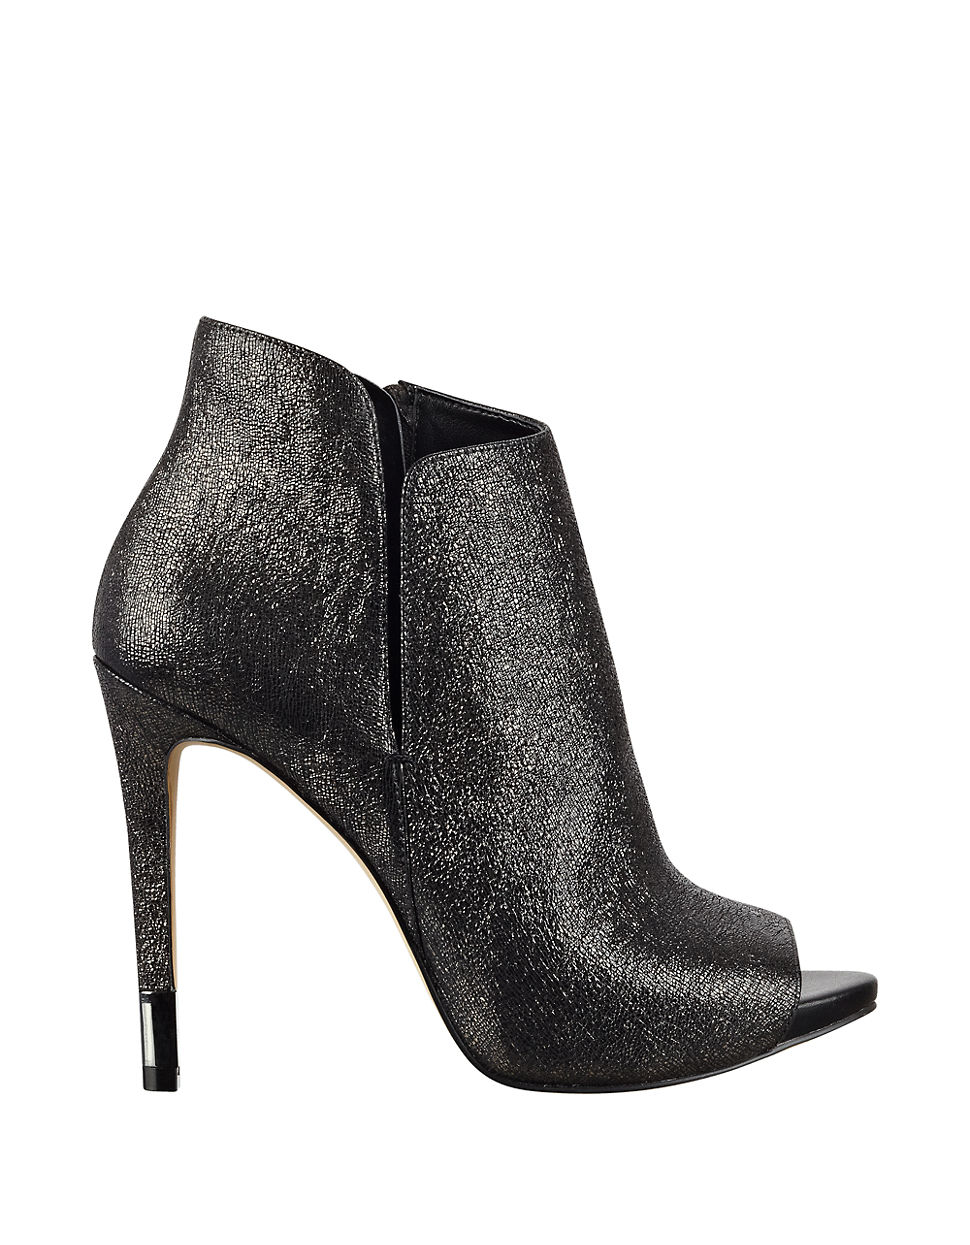 Lyst Guess Adara Leather Peep Toe Ankle Boots In Metallic